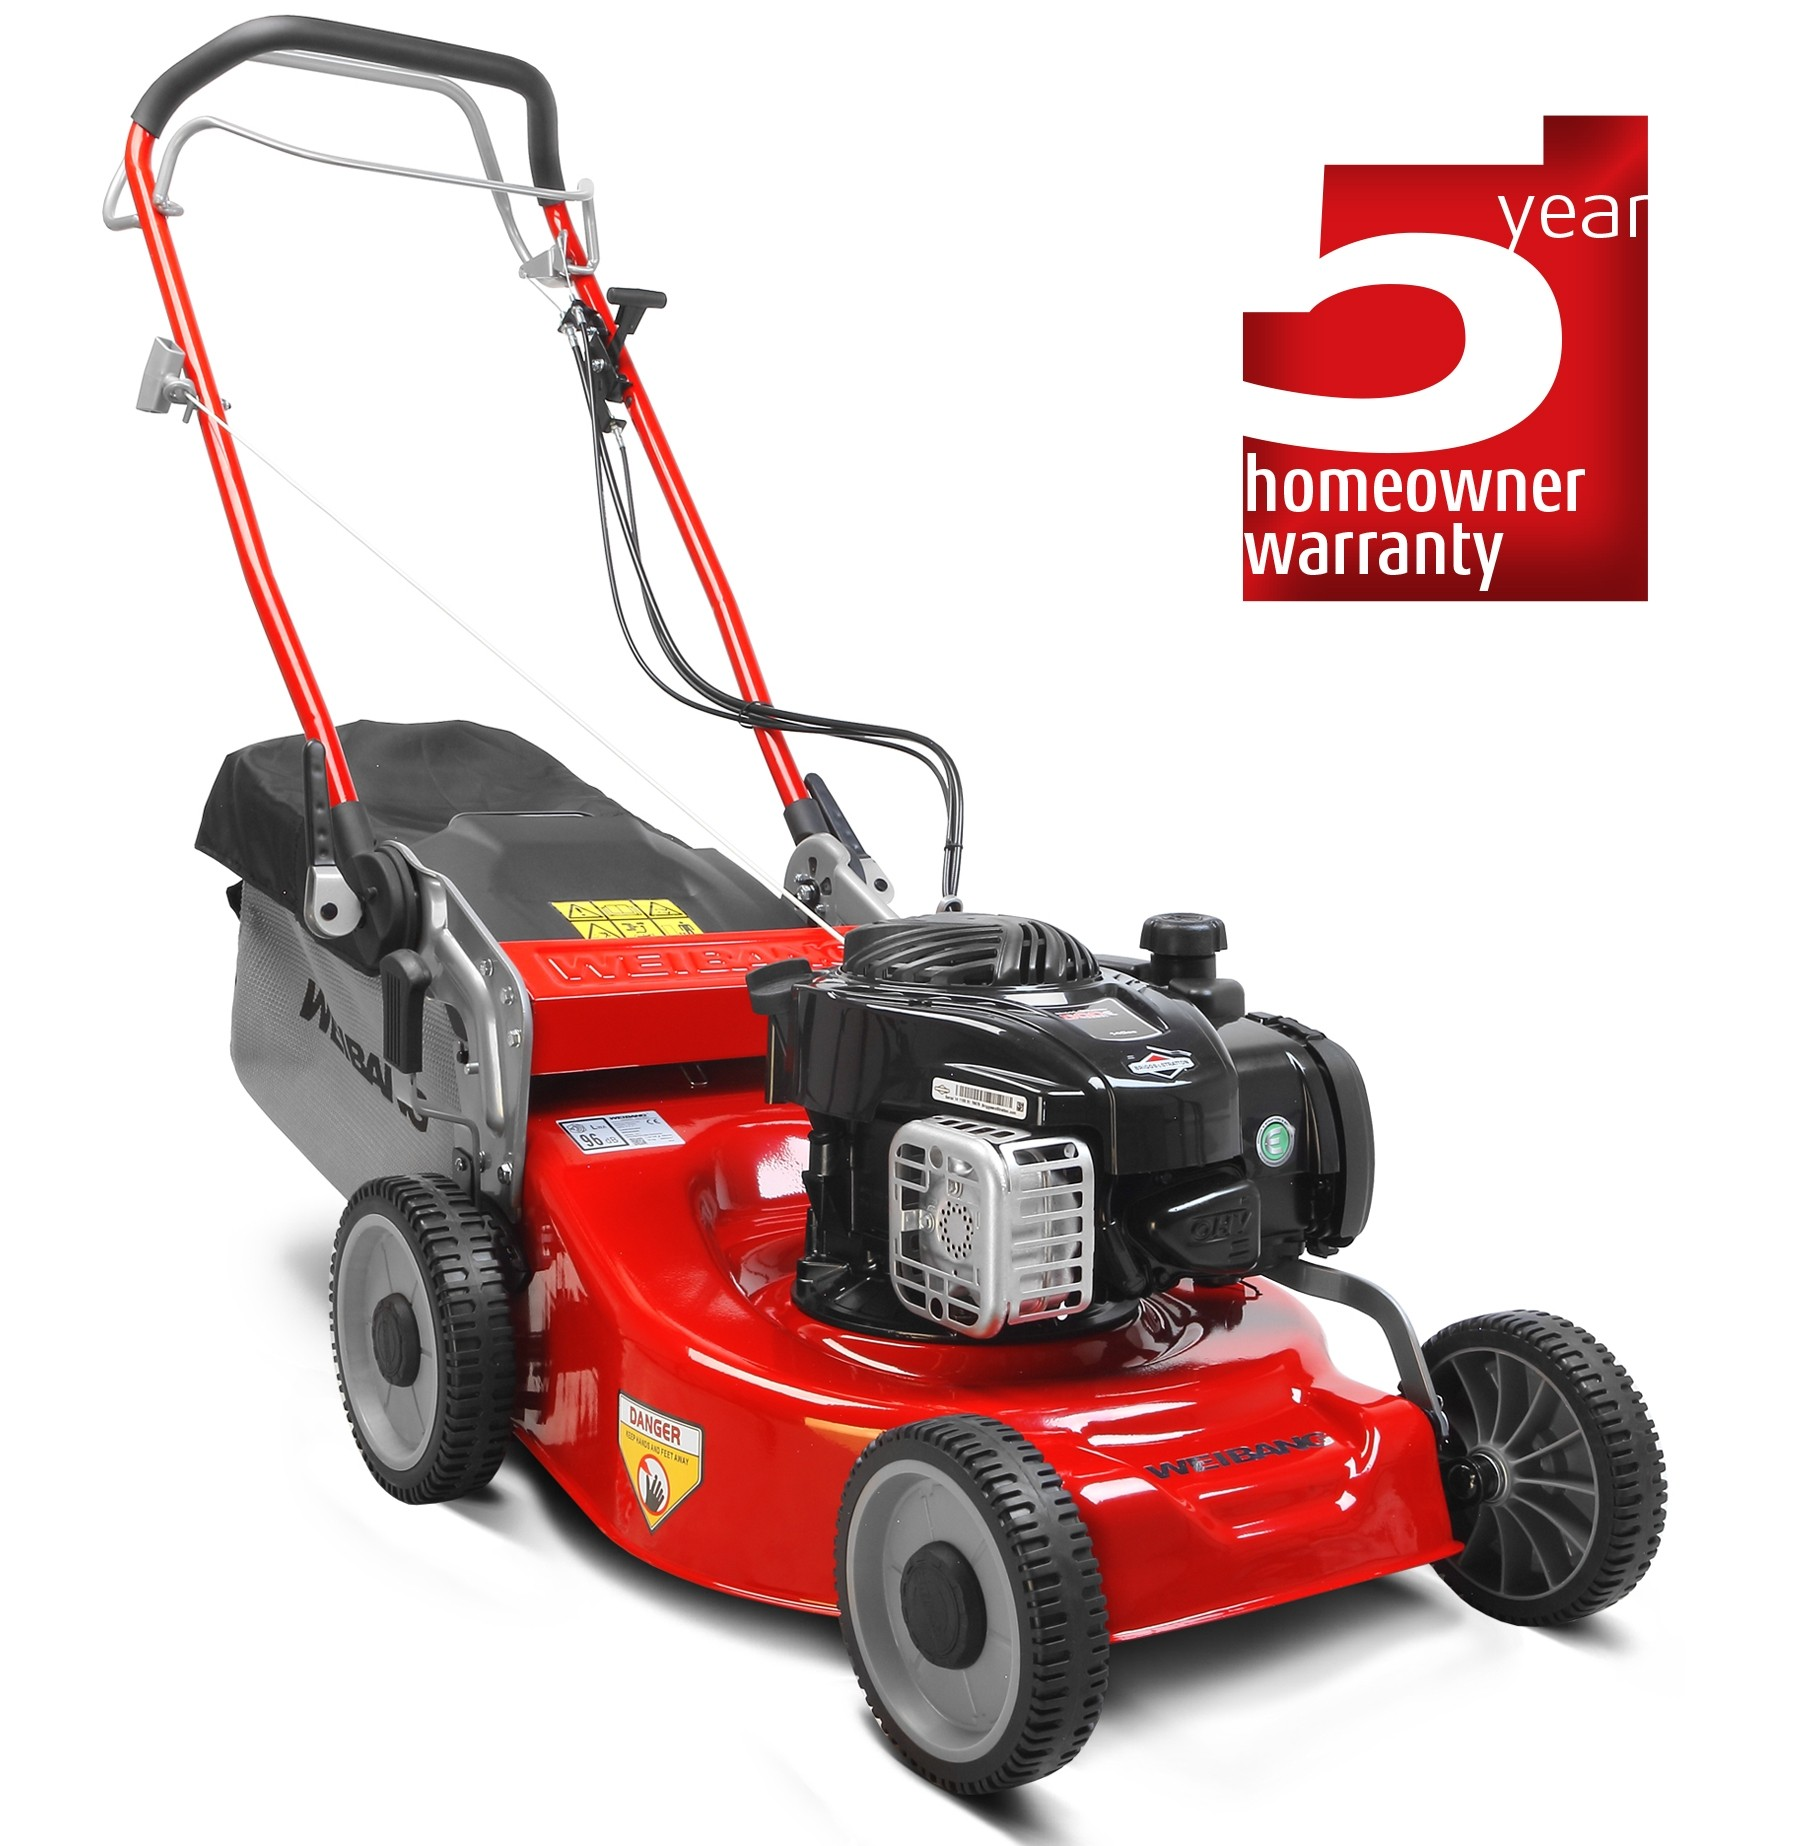 weibang 46 sp petrol lawn mower self propelled. Black Bedroom Furniture Sets. Home Design Ideas